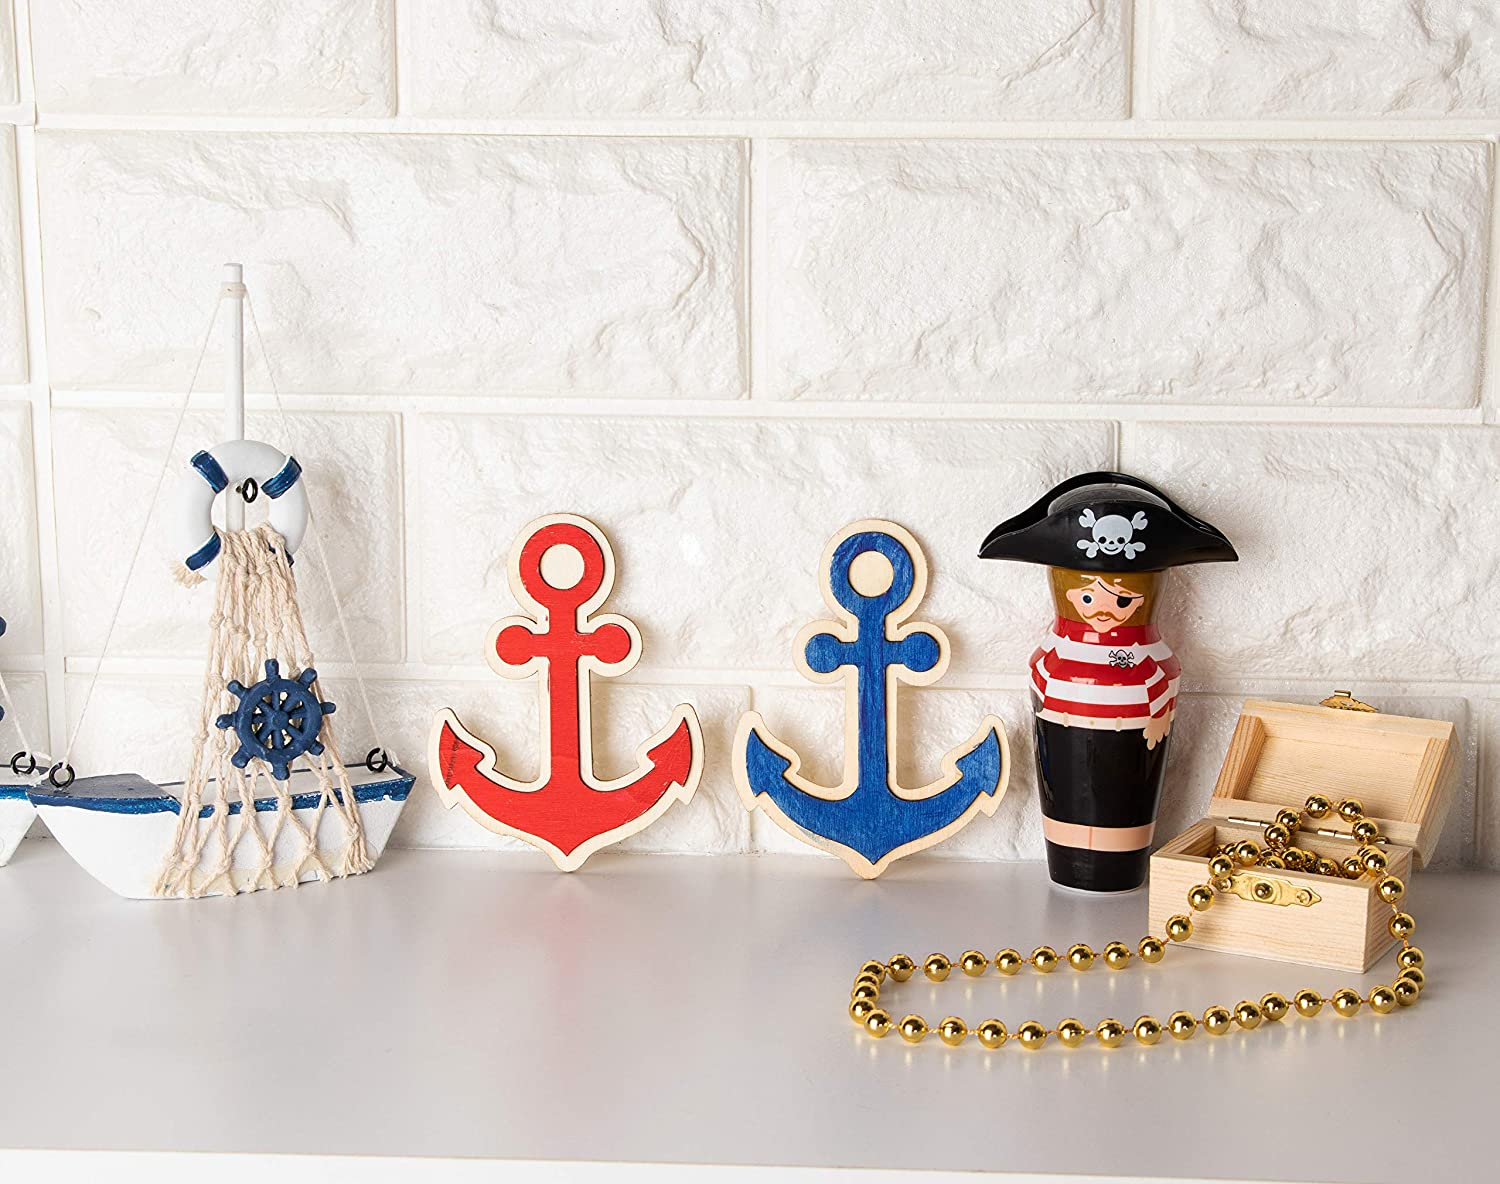 24-Pack Unfinished Wood Anchor Cutouts Nautical Party Decoration 3 x 3.875-Inch Anchor Wood Shapes for Kids DIY Craft